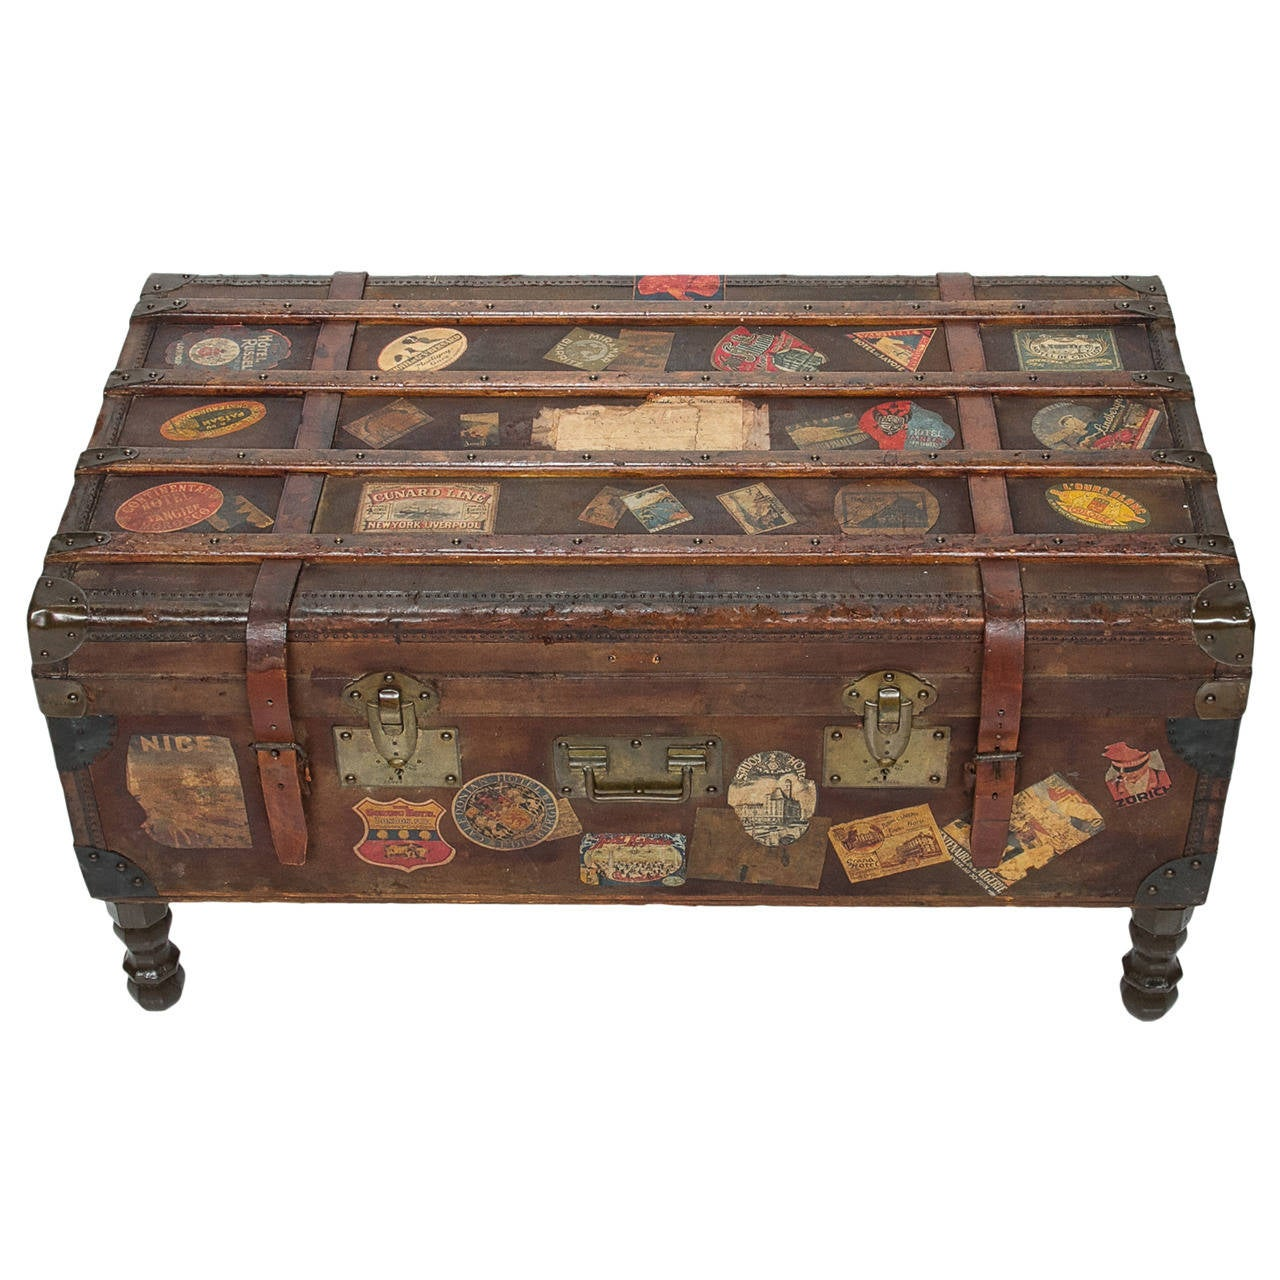 Vintage travel trunk coffee table by arthur eymann from for Vintage coffee table